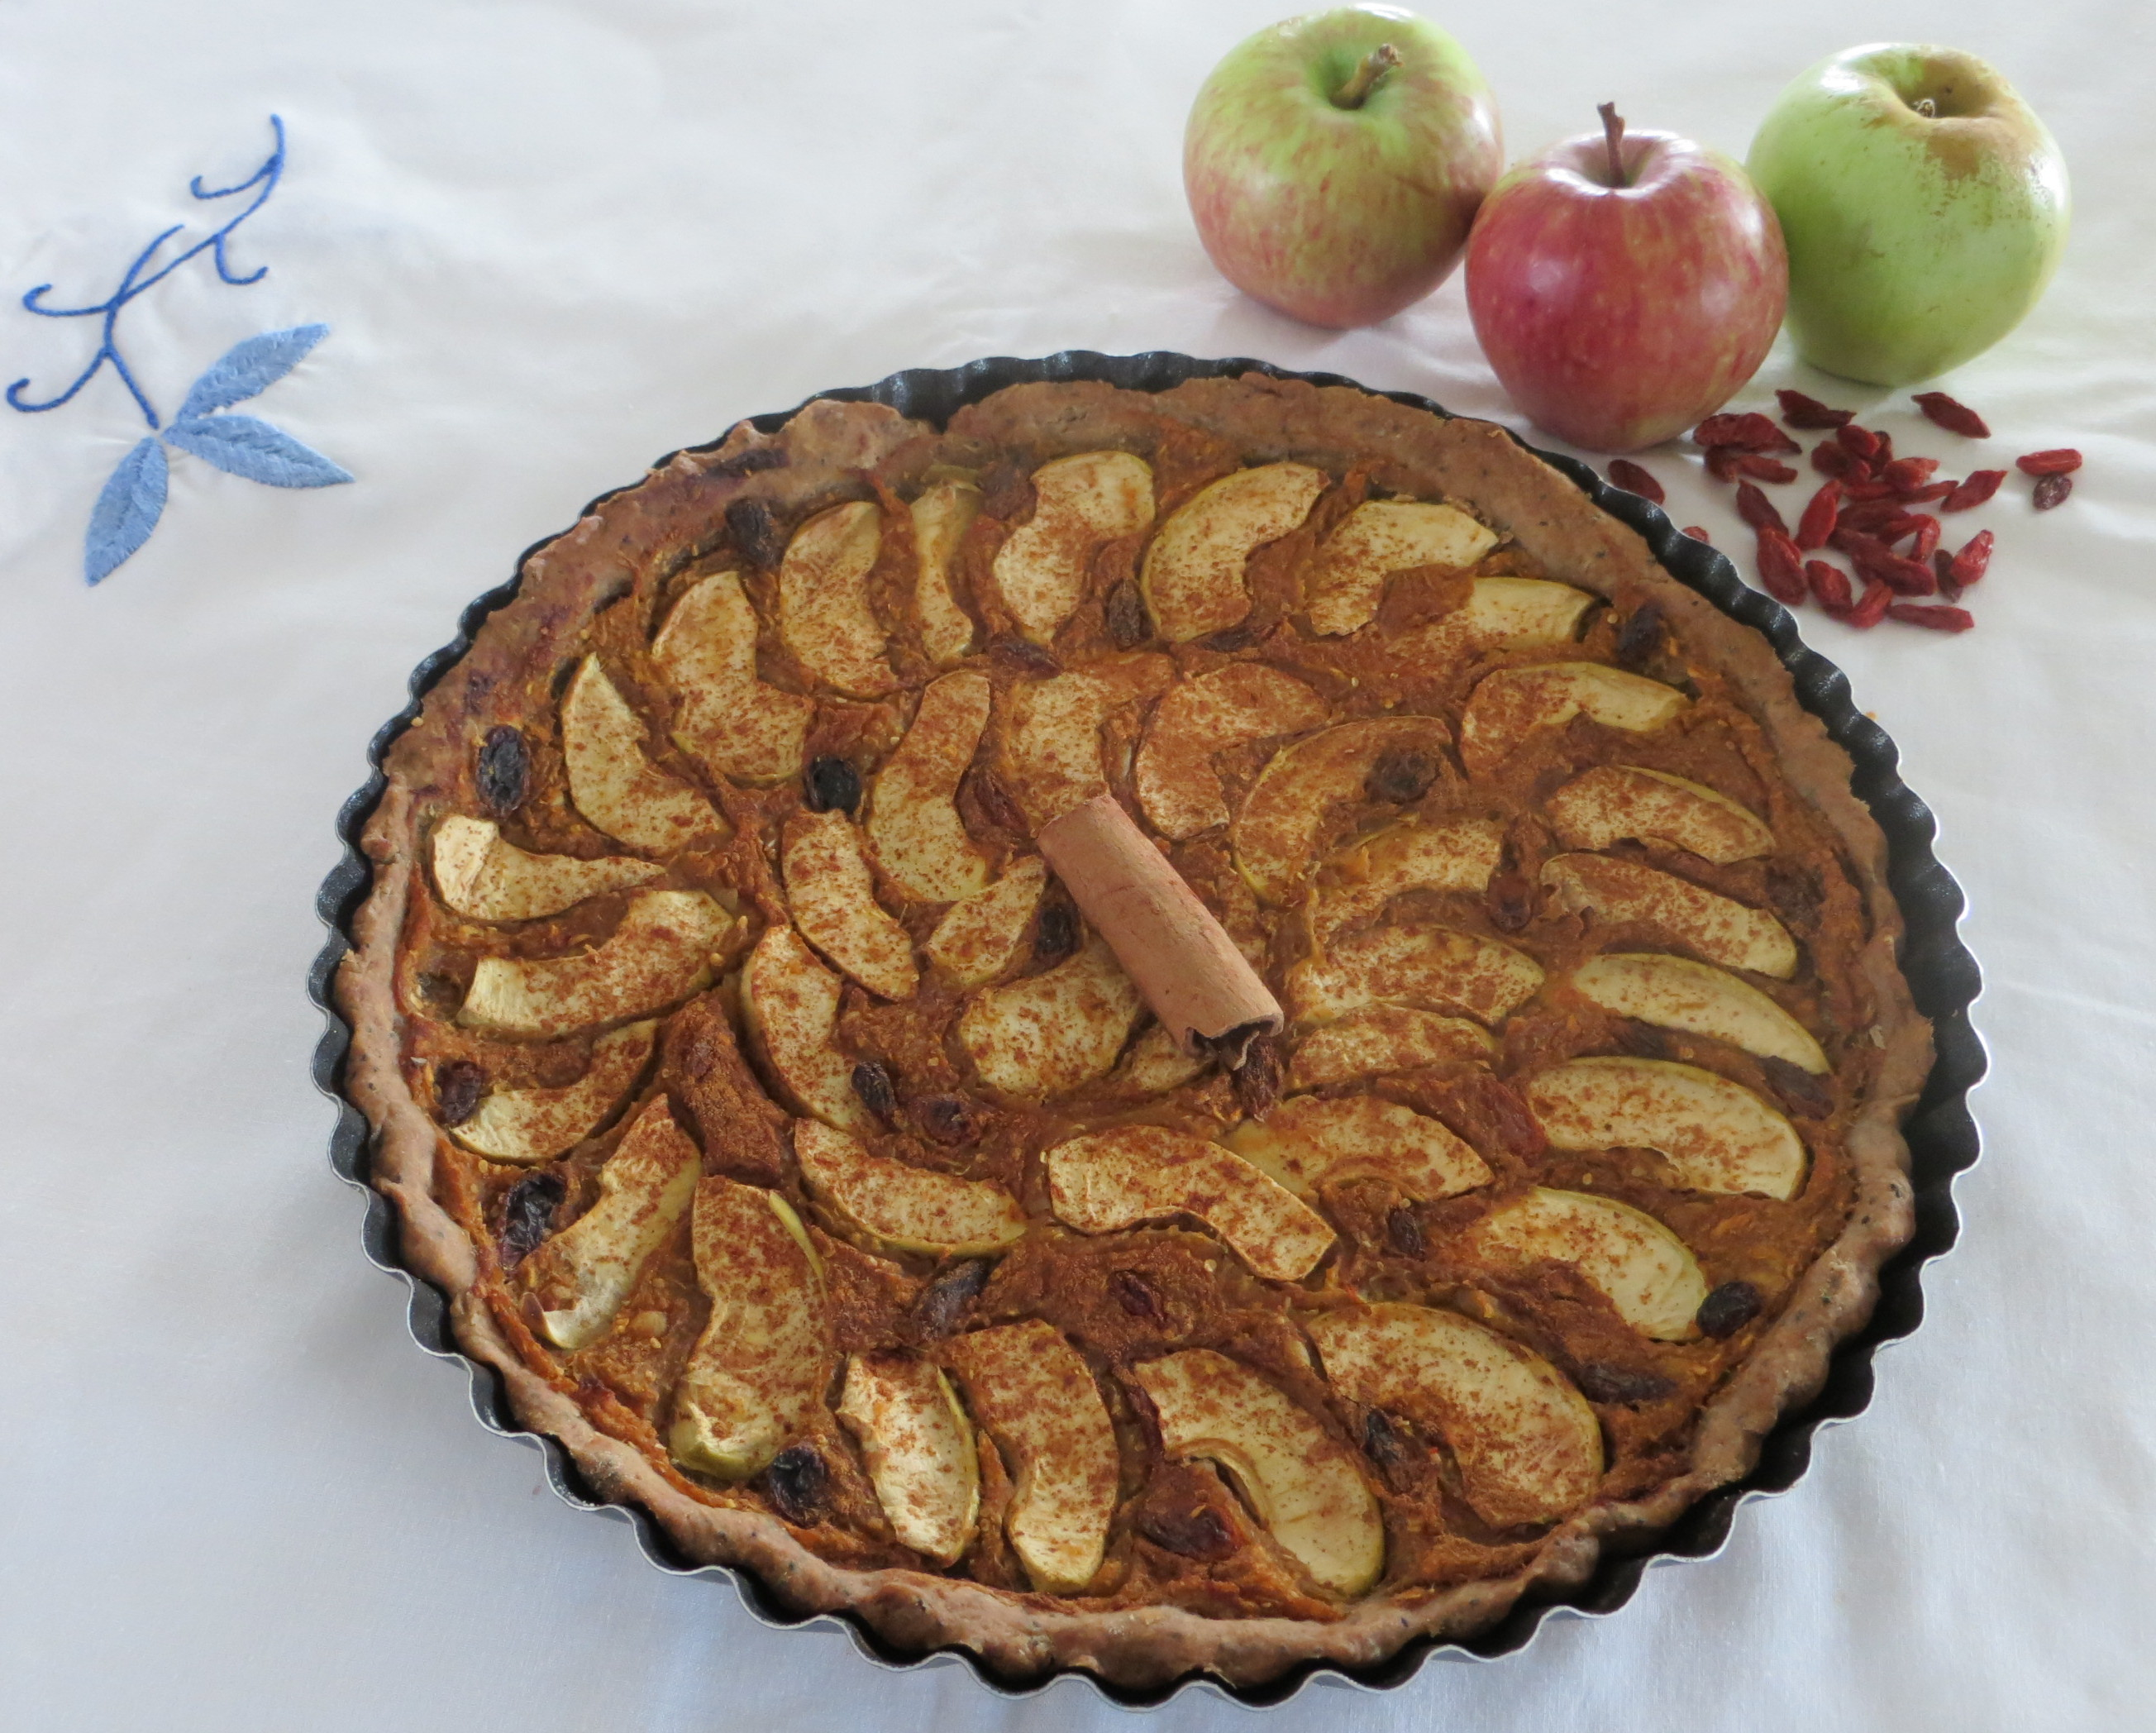 Apple and gojis pie